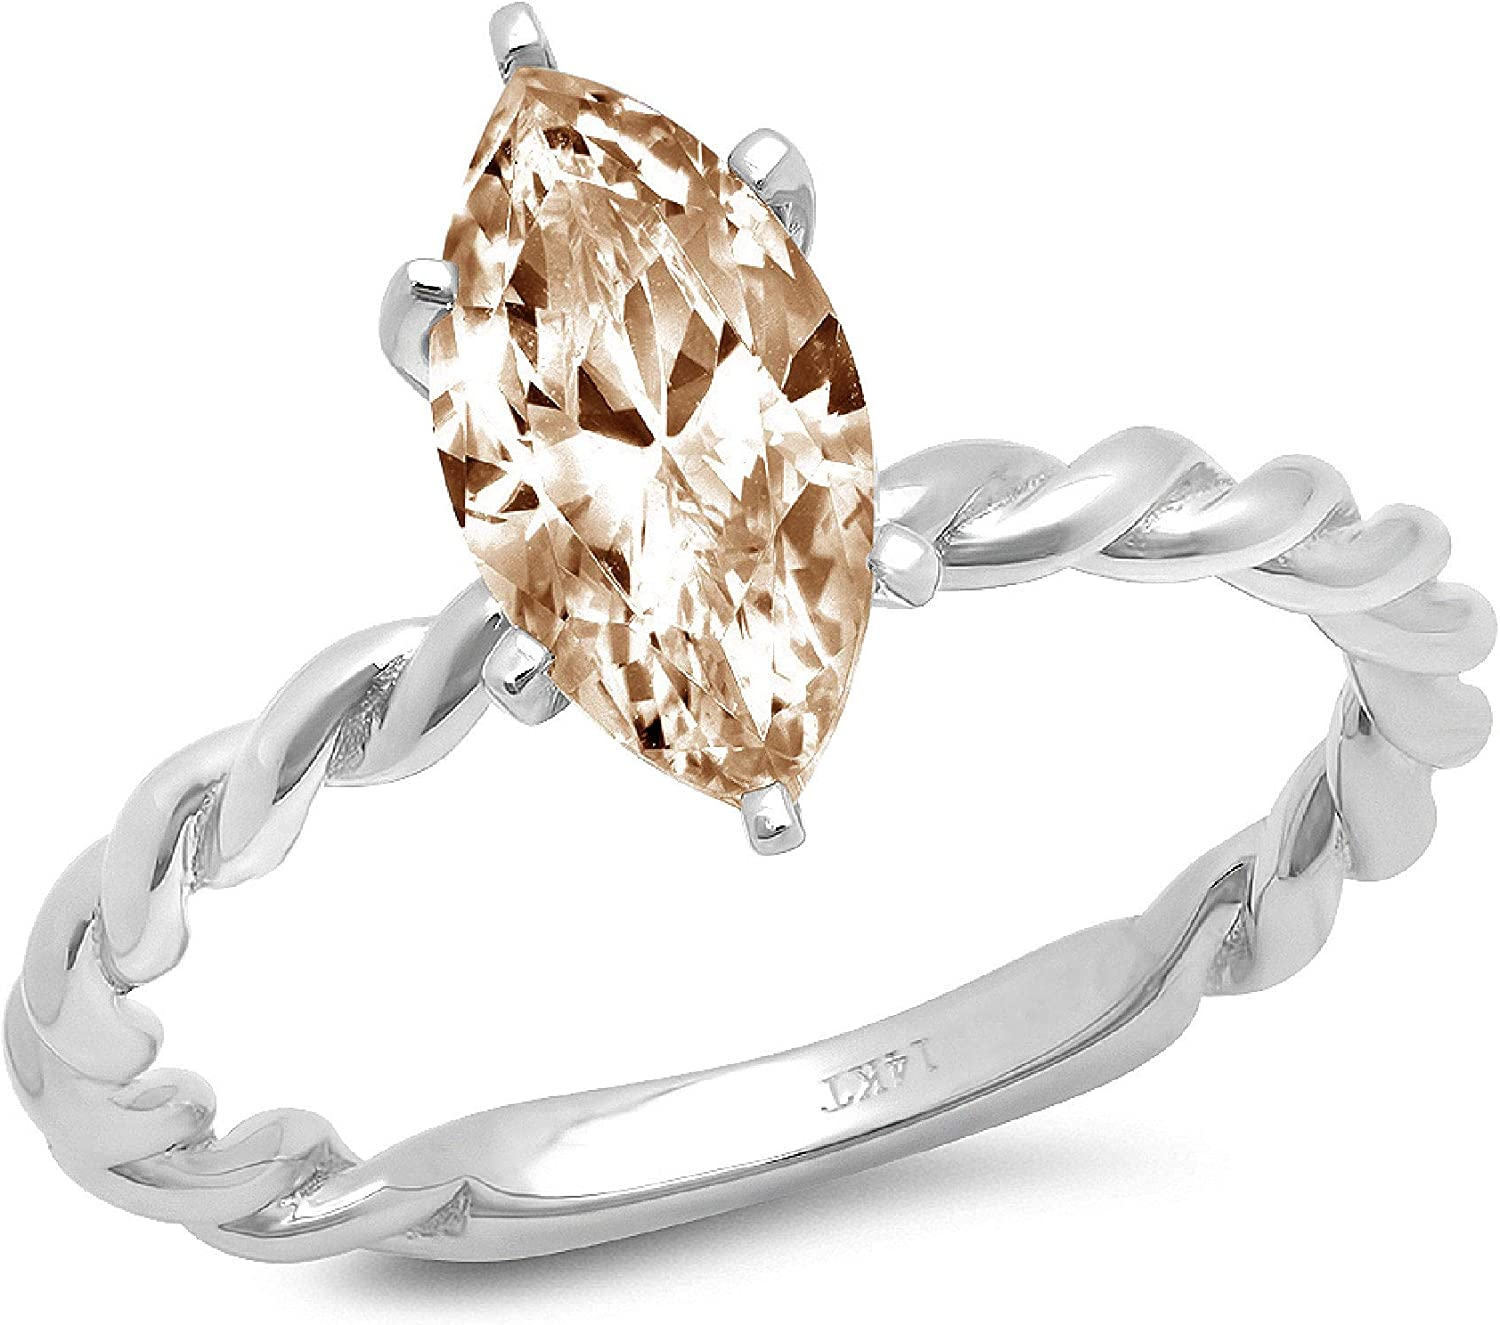 2.1 ct Marquise Cut Solitaire Stunning New item Rope Twisted Outstanding Knot Flawles